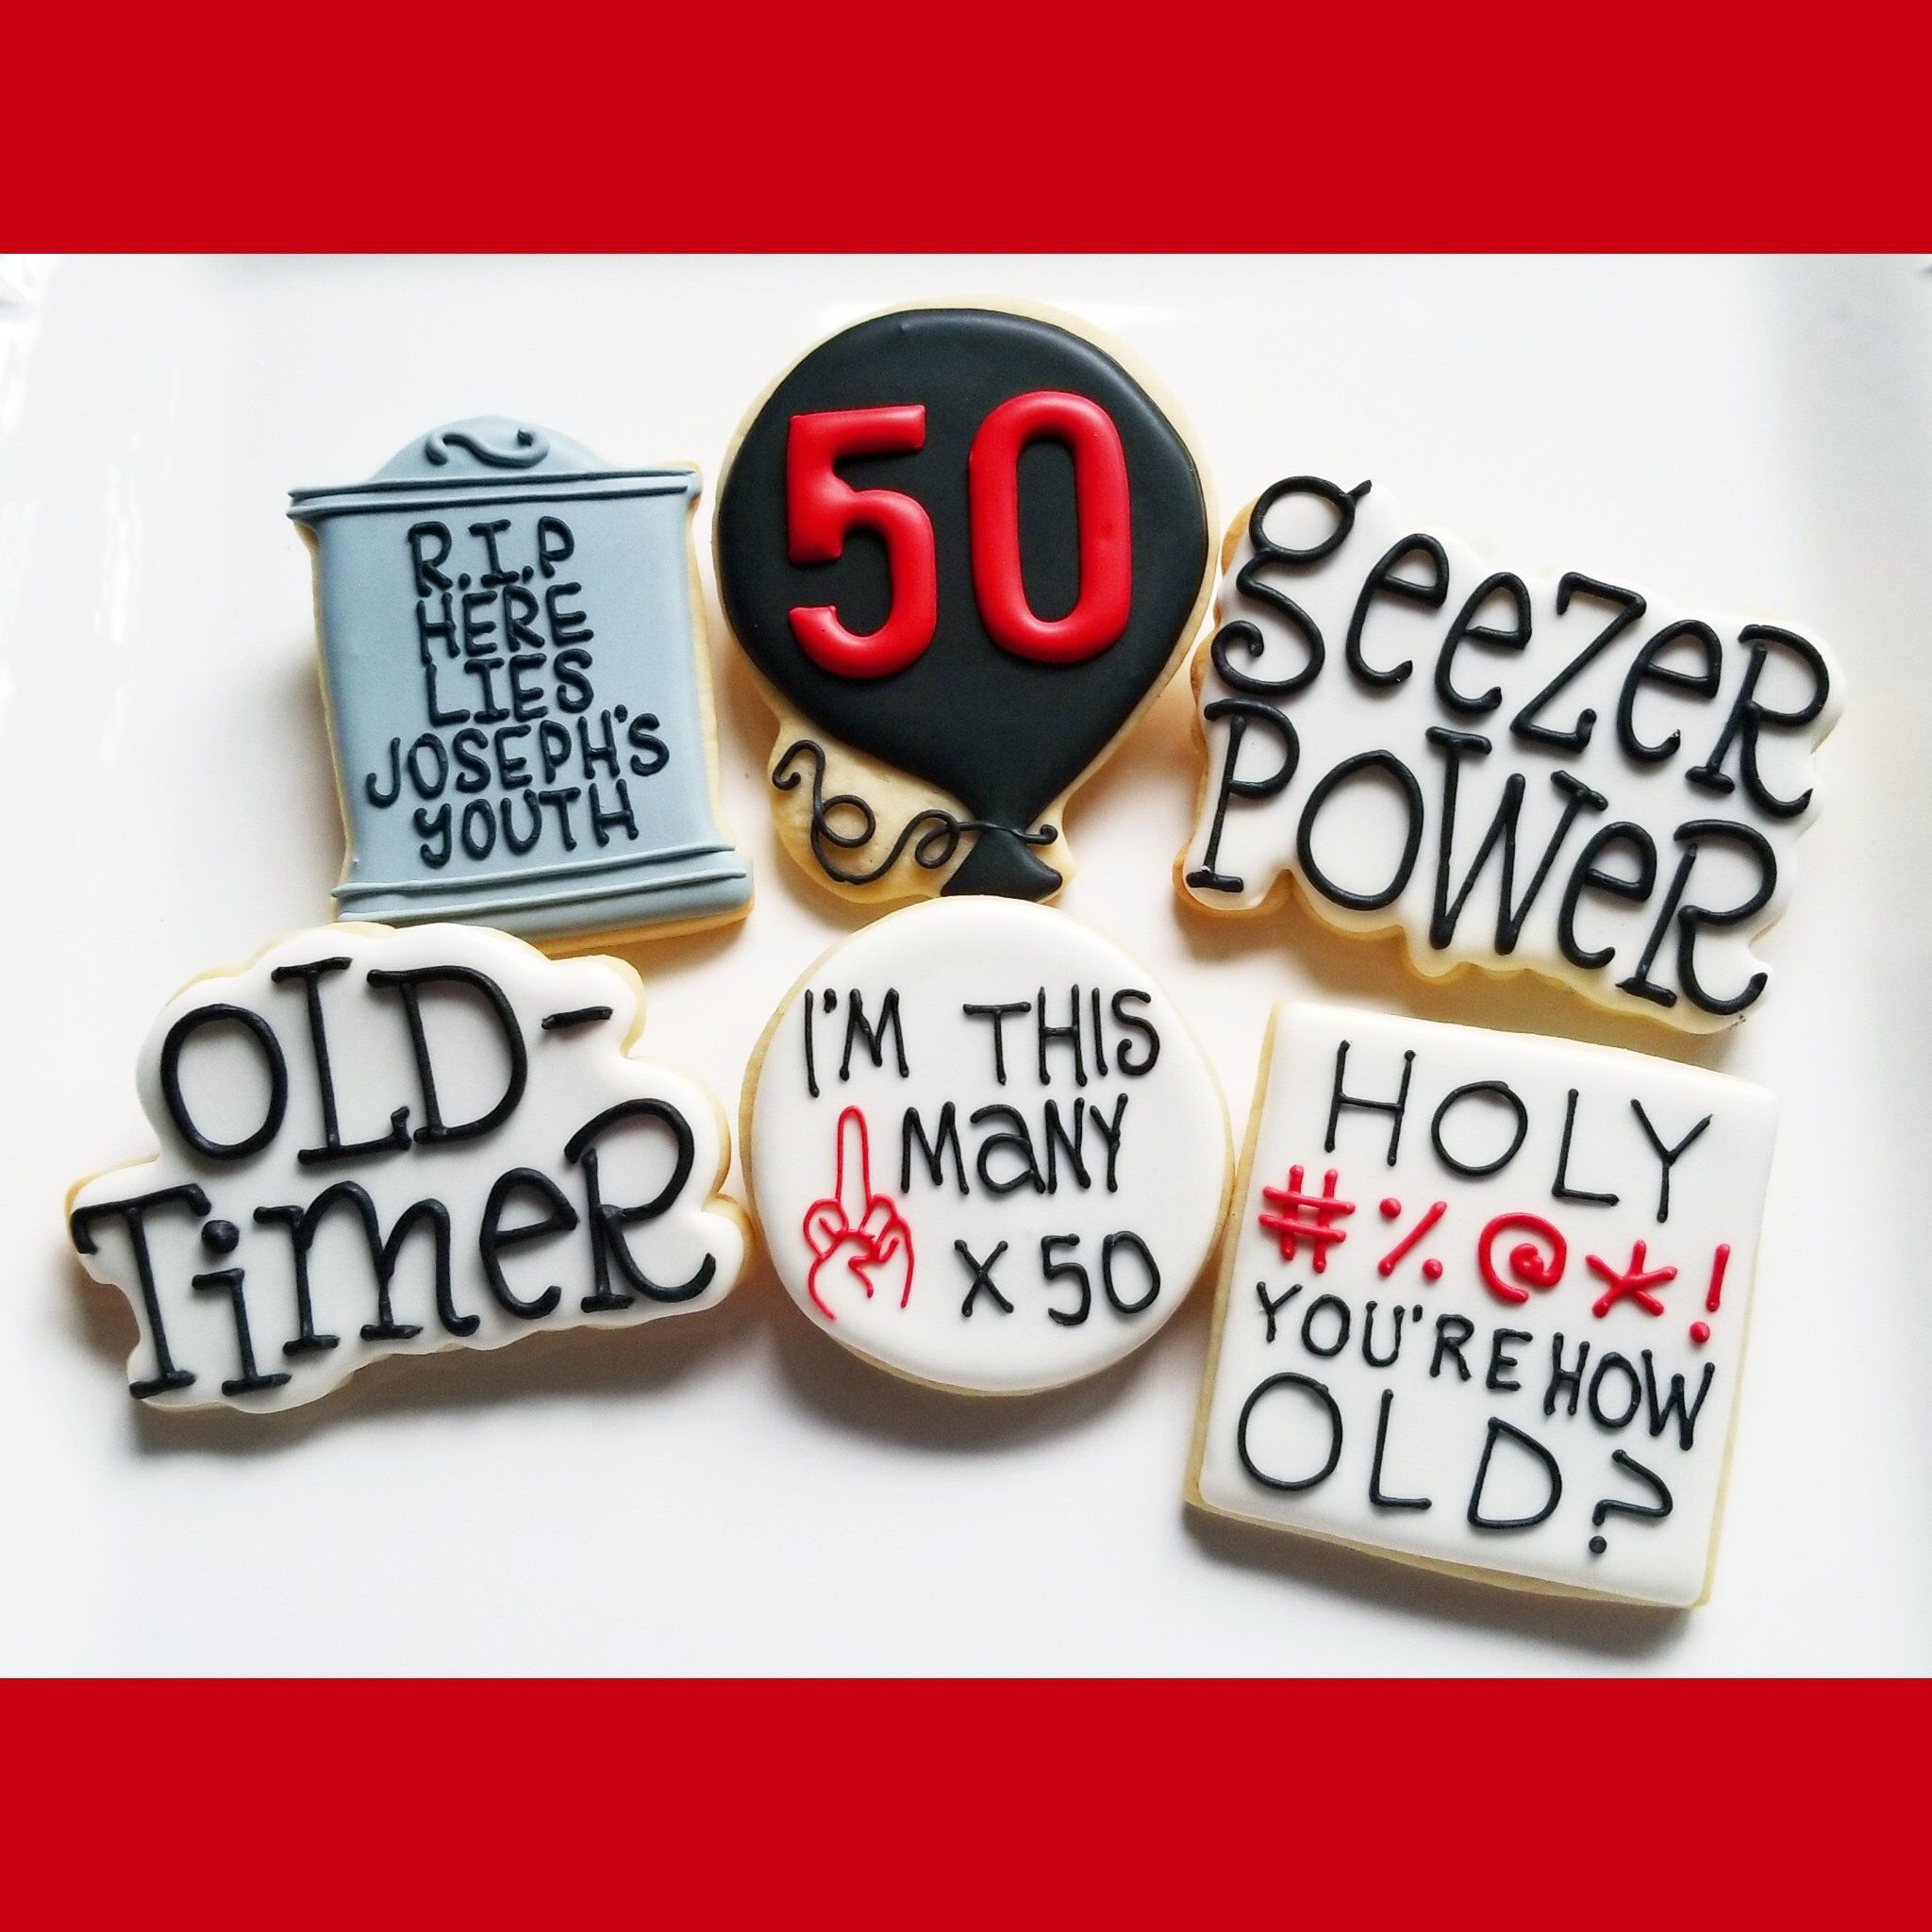 1eec8bf36ce0f 1 DOZEN - Over the Hill Custom Cookies Decorated Old Man Old Timer ...